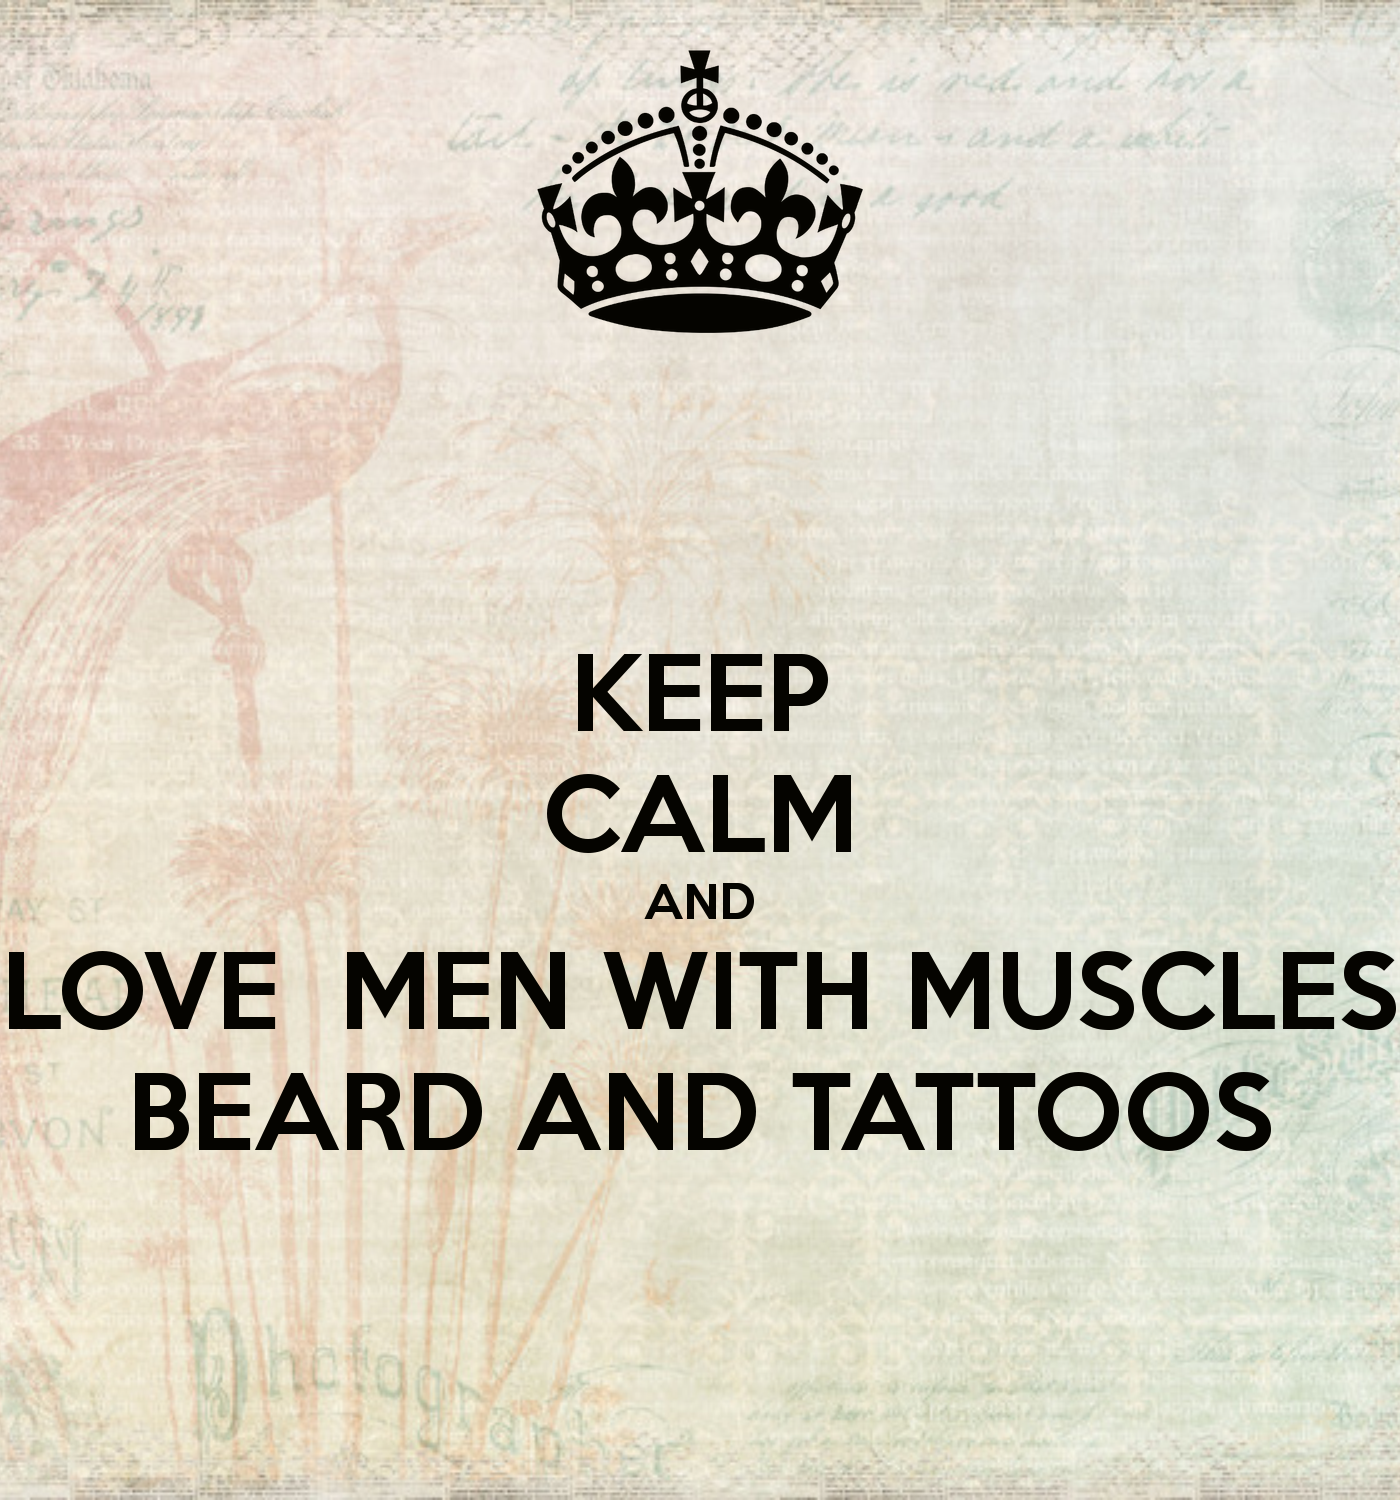 KEEP CALM AND LOVE MEN WITH MUSCLES BEARD AND TATTOOS ...